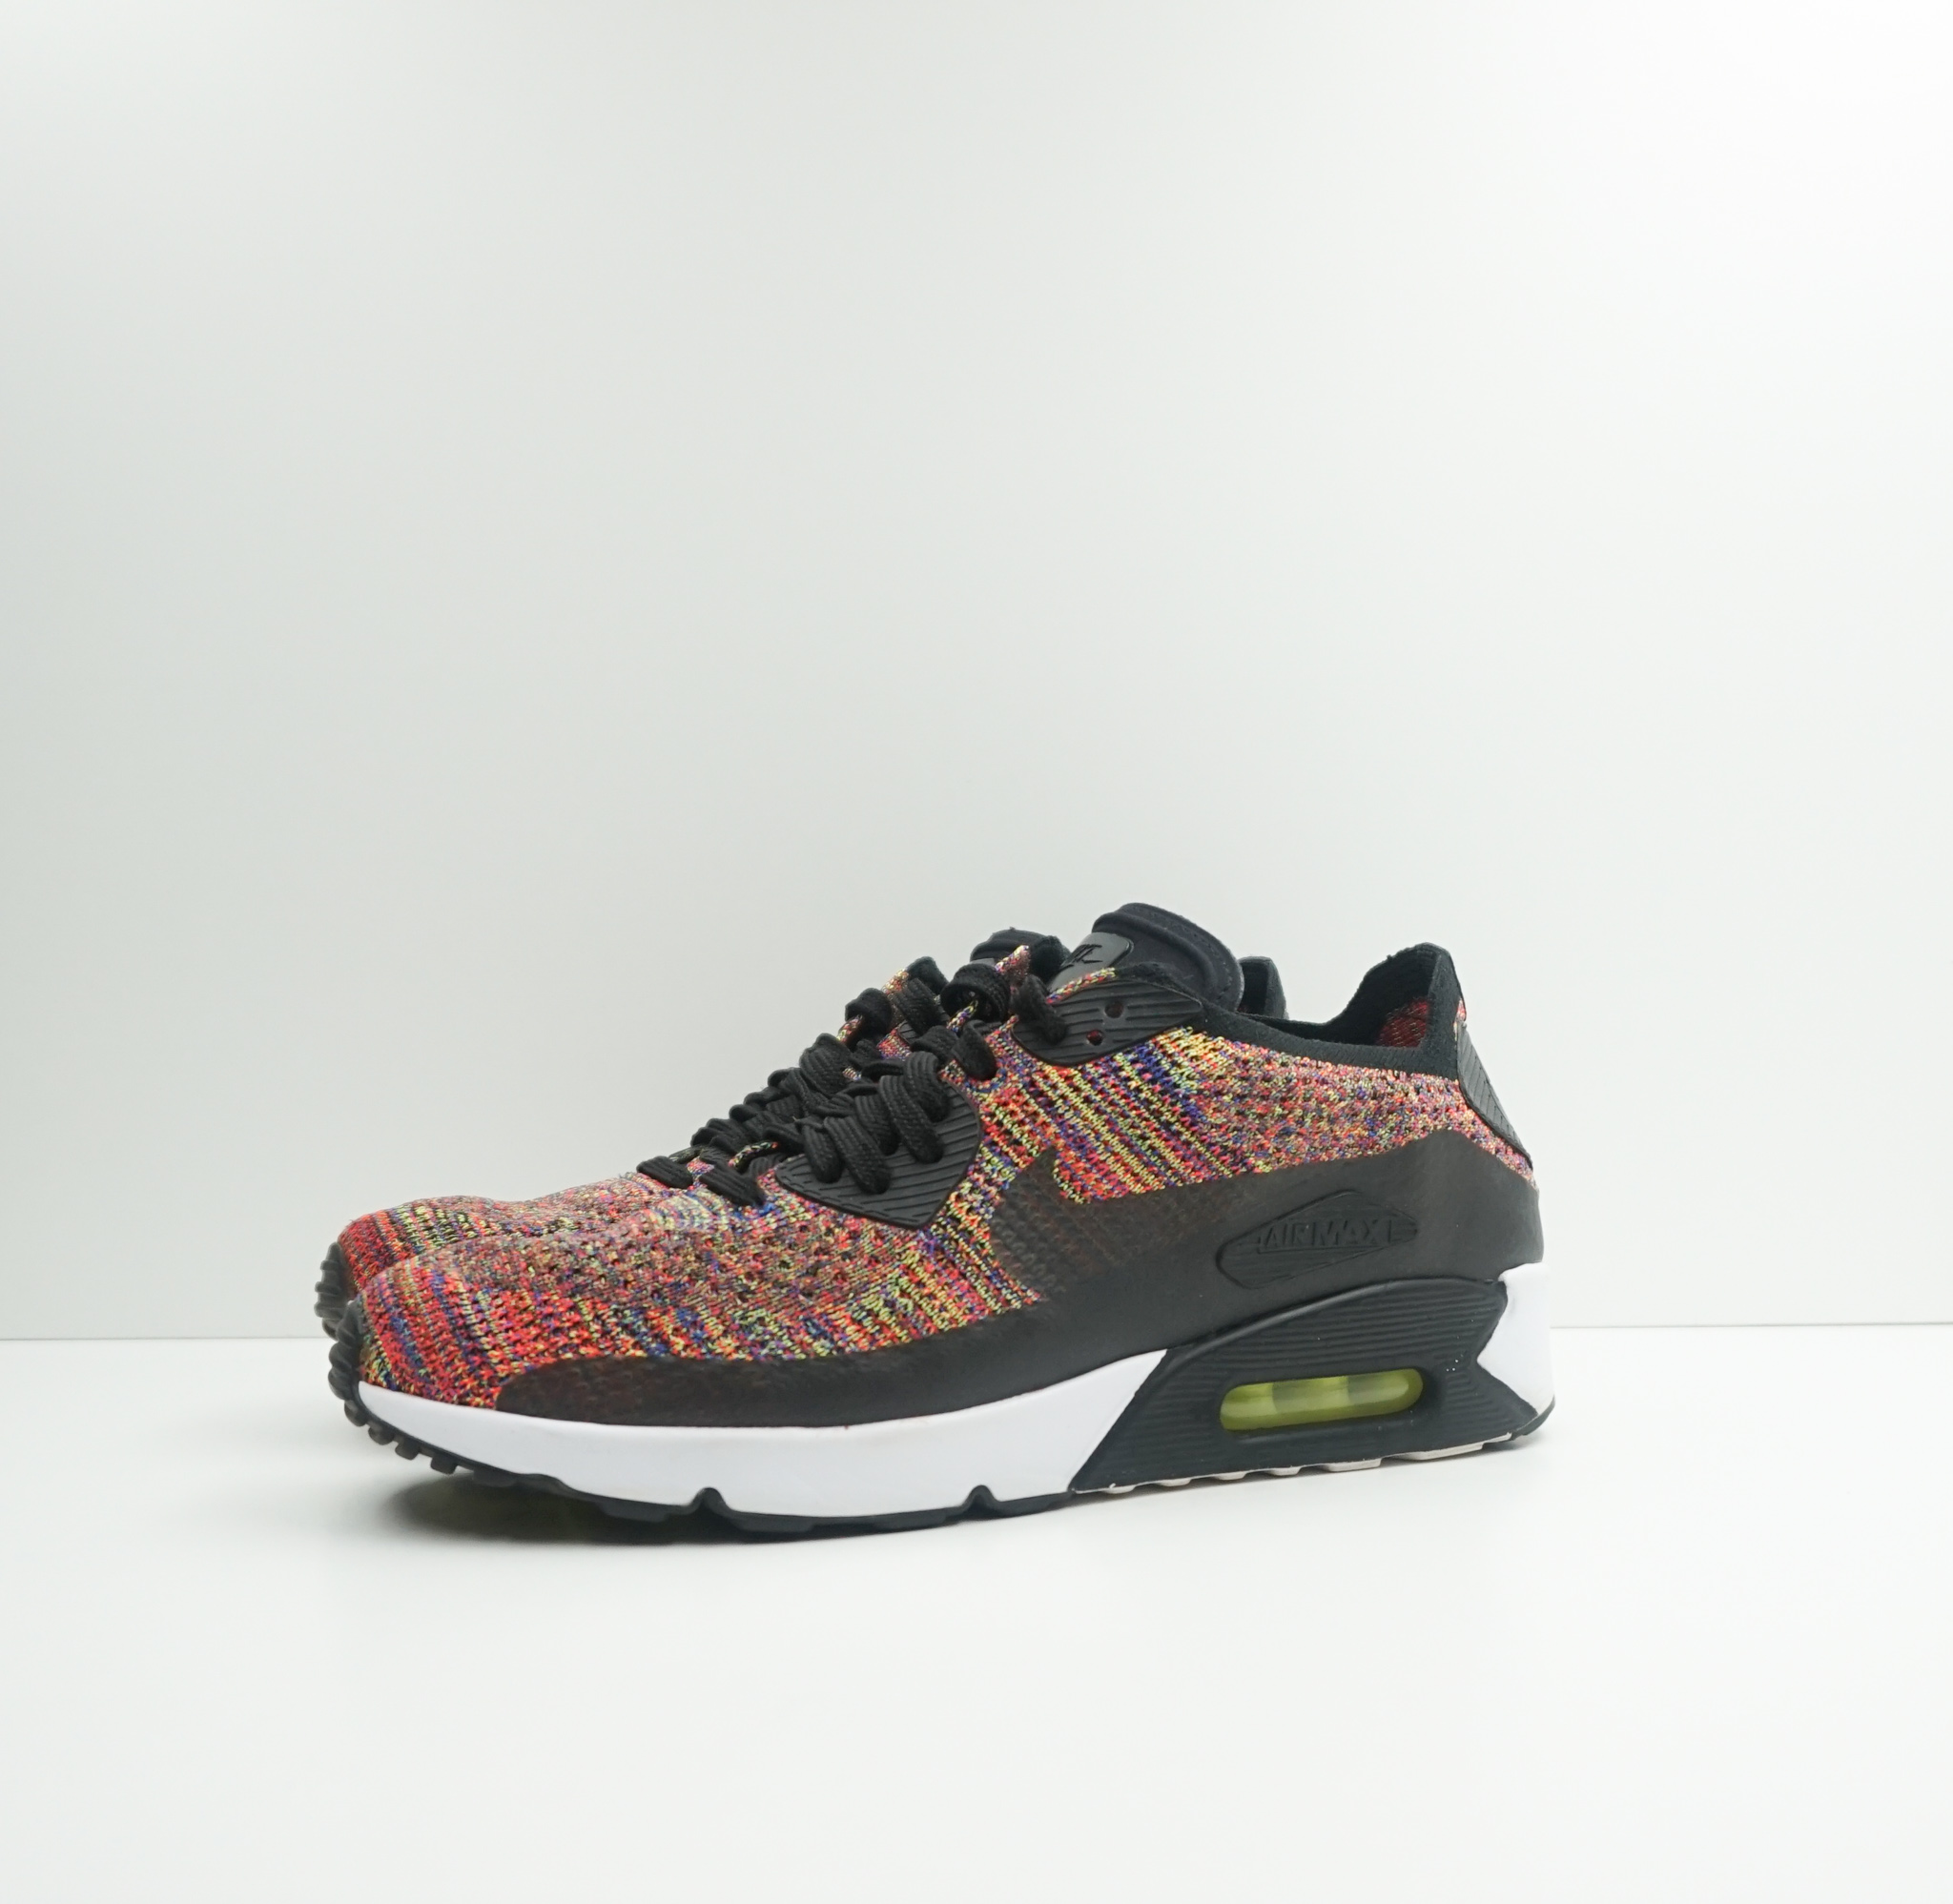 Nike Air Max 90 Ultra 2.0 Flyknit Multi-Color